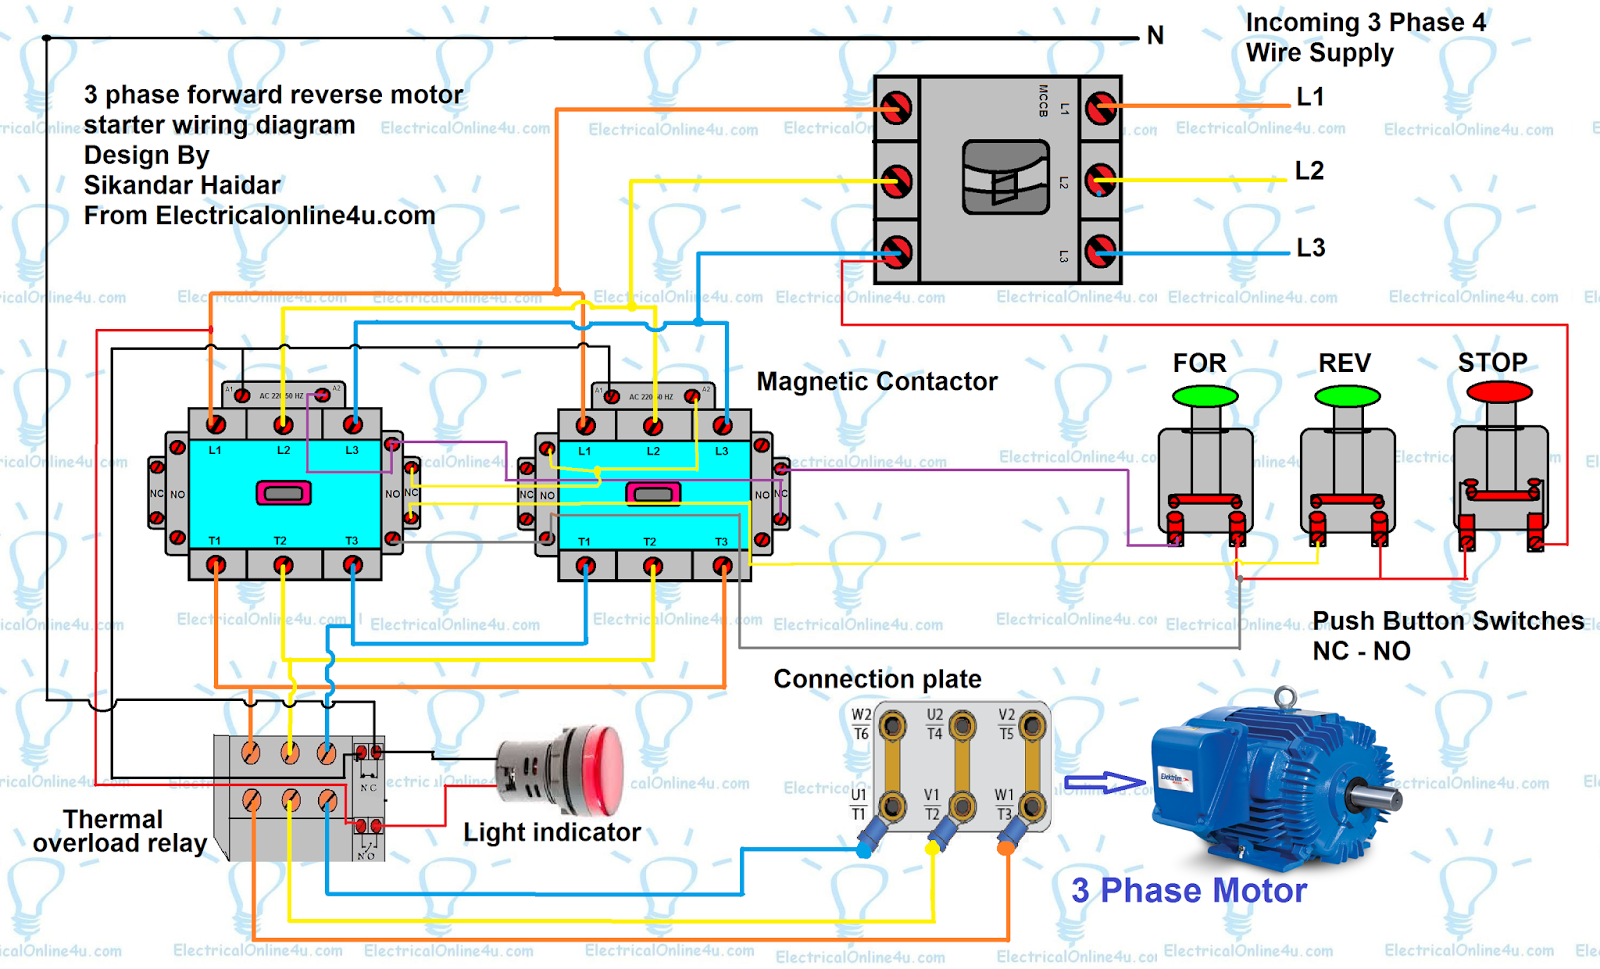 forward reverse motor control diagram for 3 phase motor electrical rh pinterest co uk circuit diagram [ 1600 x 969 Pixel ]